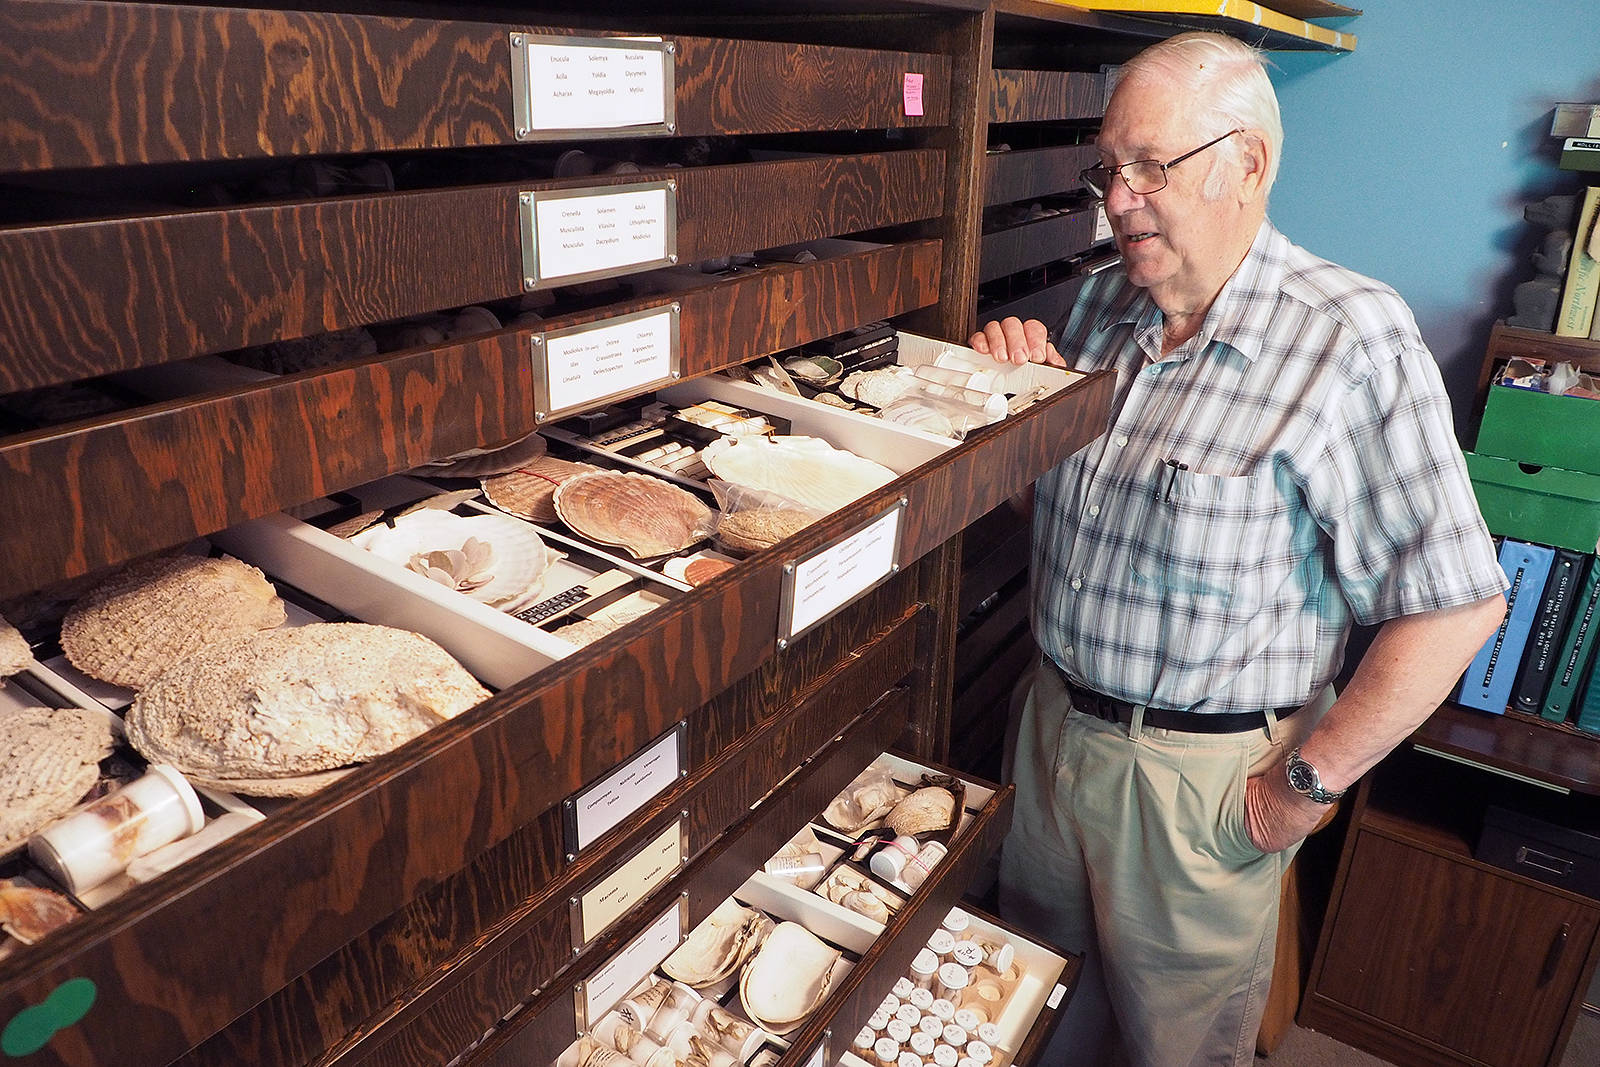 Bill Merilees, a retired B.C. Parks regional information officer, collected mollusk shells from B.C. and Washington state coastlines for 50 years and has donated his 140,000-specimen collection to University of British Columbia's Beaty Biodiversity Museum. (Chris Bush/News Bulletin)